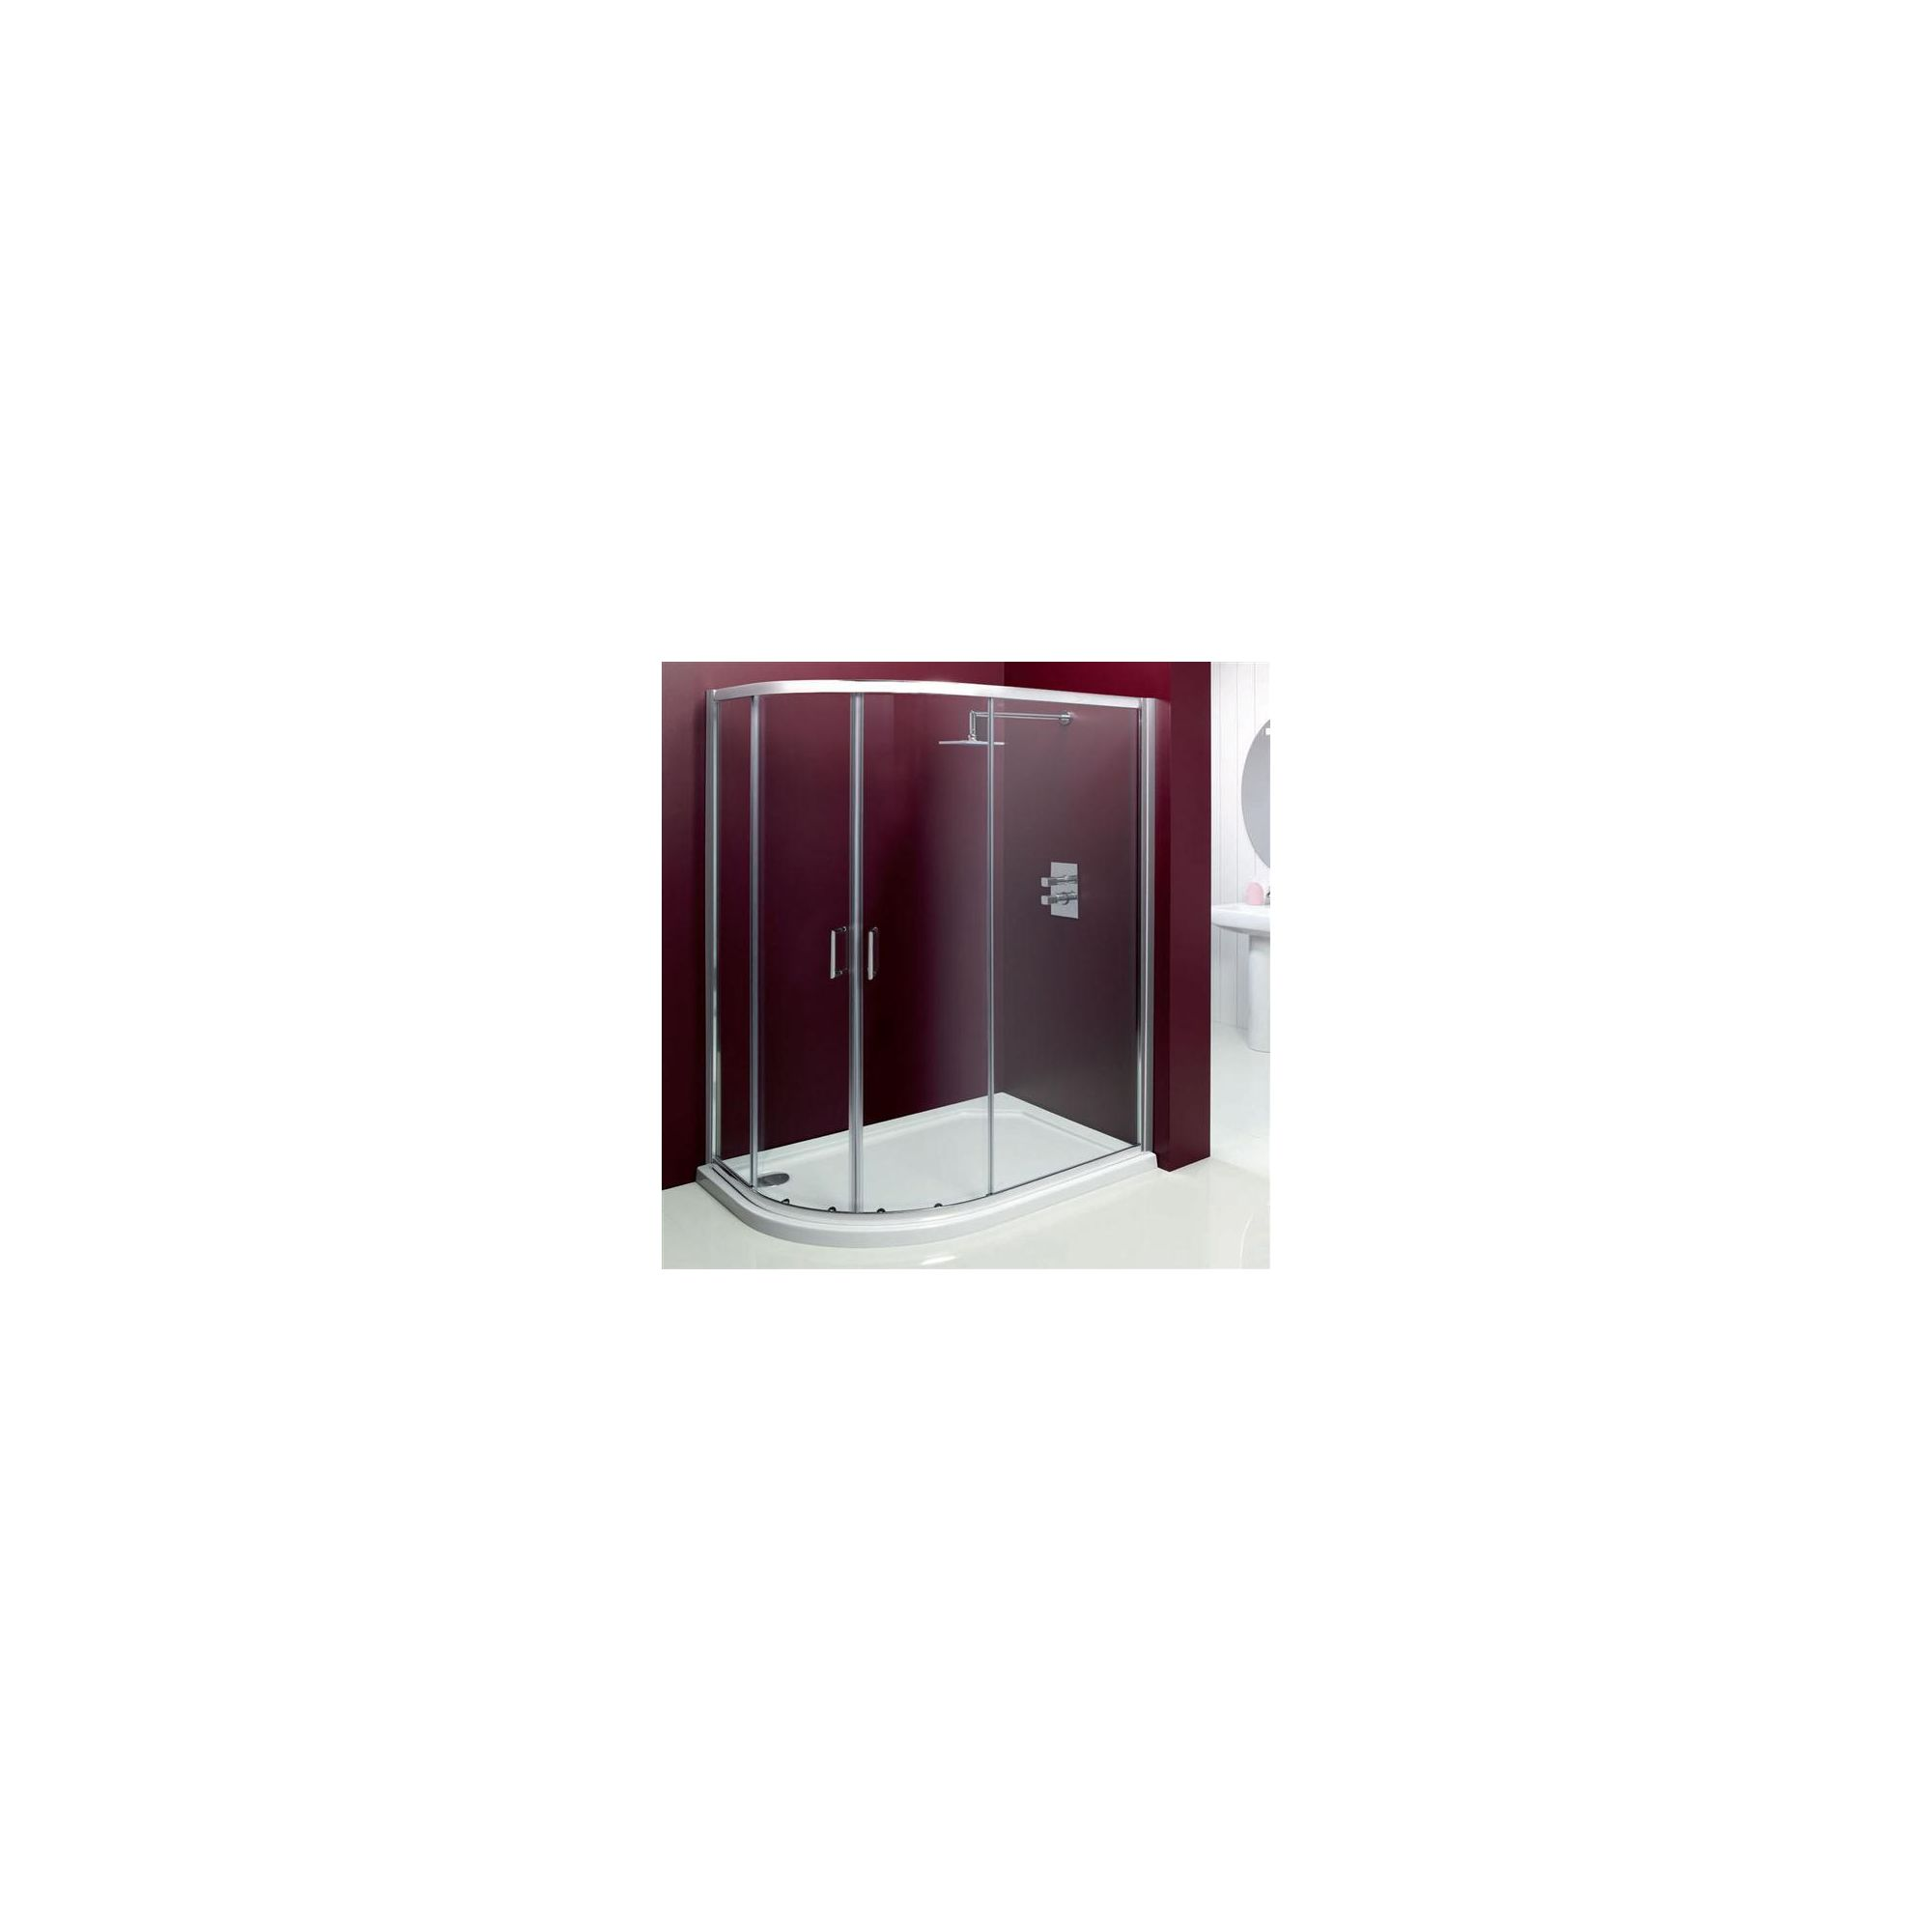 Merlyn Vivid Entree Offset Quadrant Shower Enclosure, 1000mm x 800mm, Left Handed, Low Profile Tray, 6mm Glass at Tesco Direct